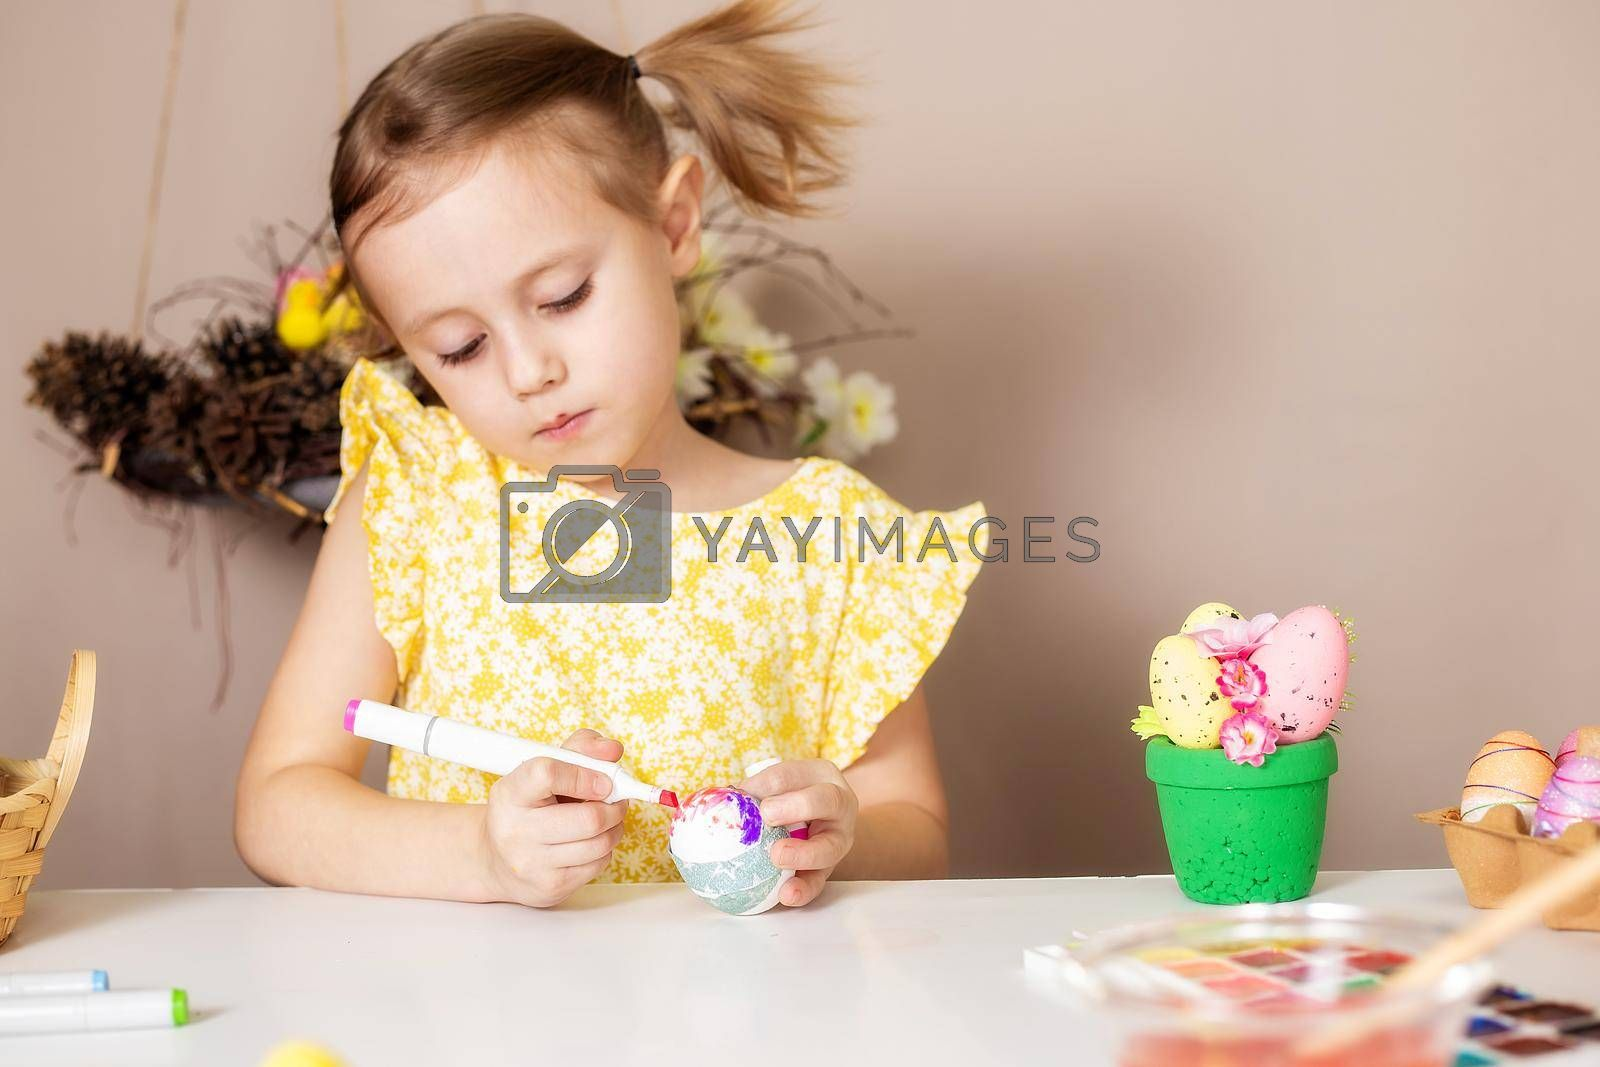 A small Caucasian girl of 5 years old paints eggs with special markers for the Christian spring holiday of Easter. The girl is dressed in a yellow floral dress and has ponytails.